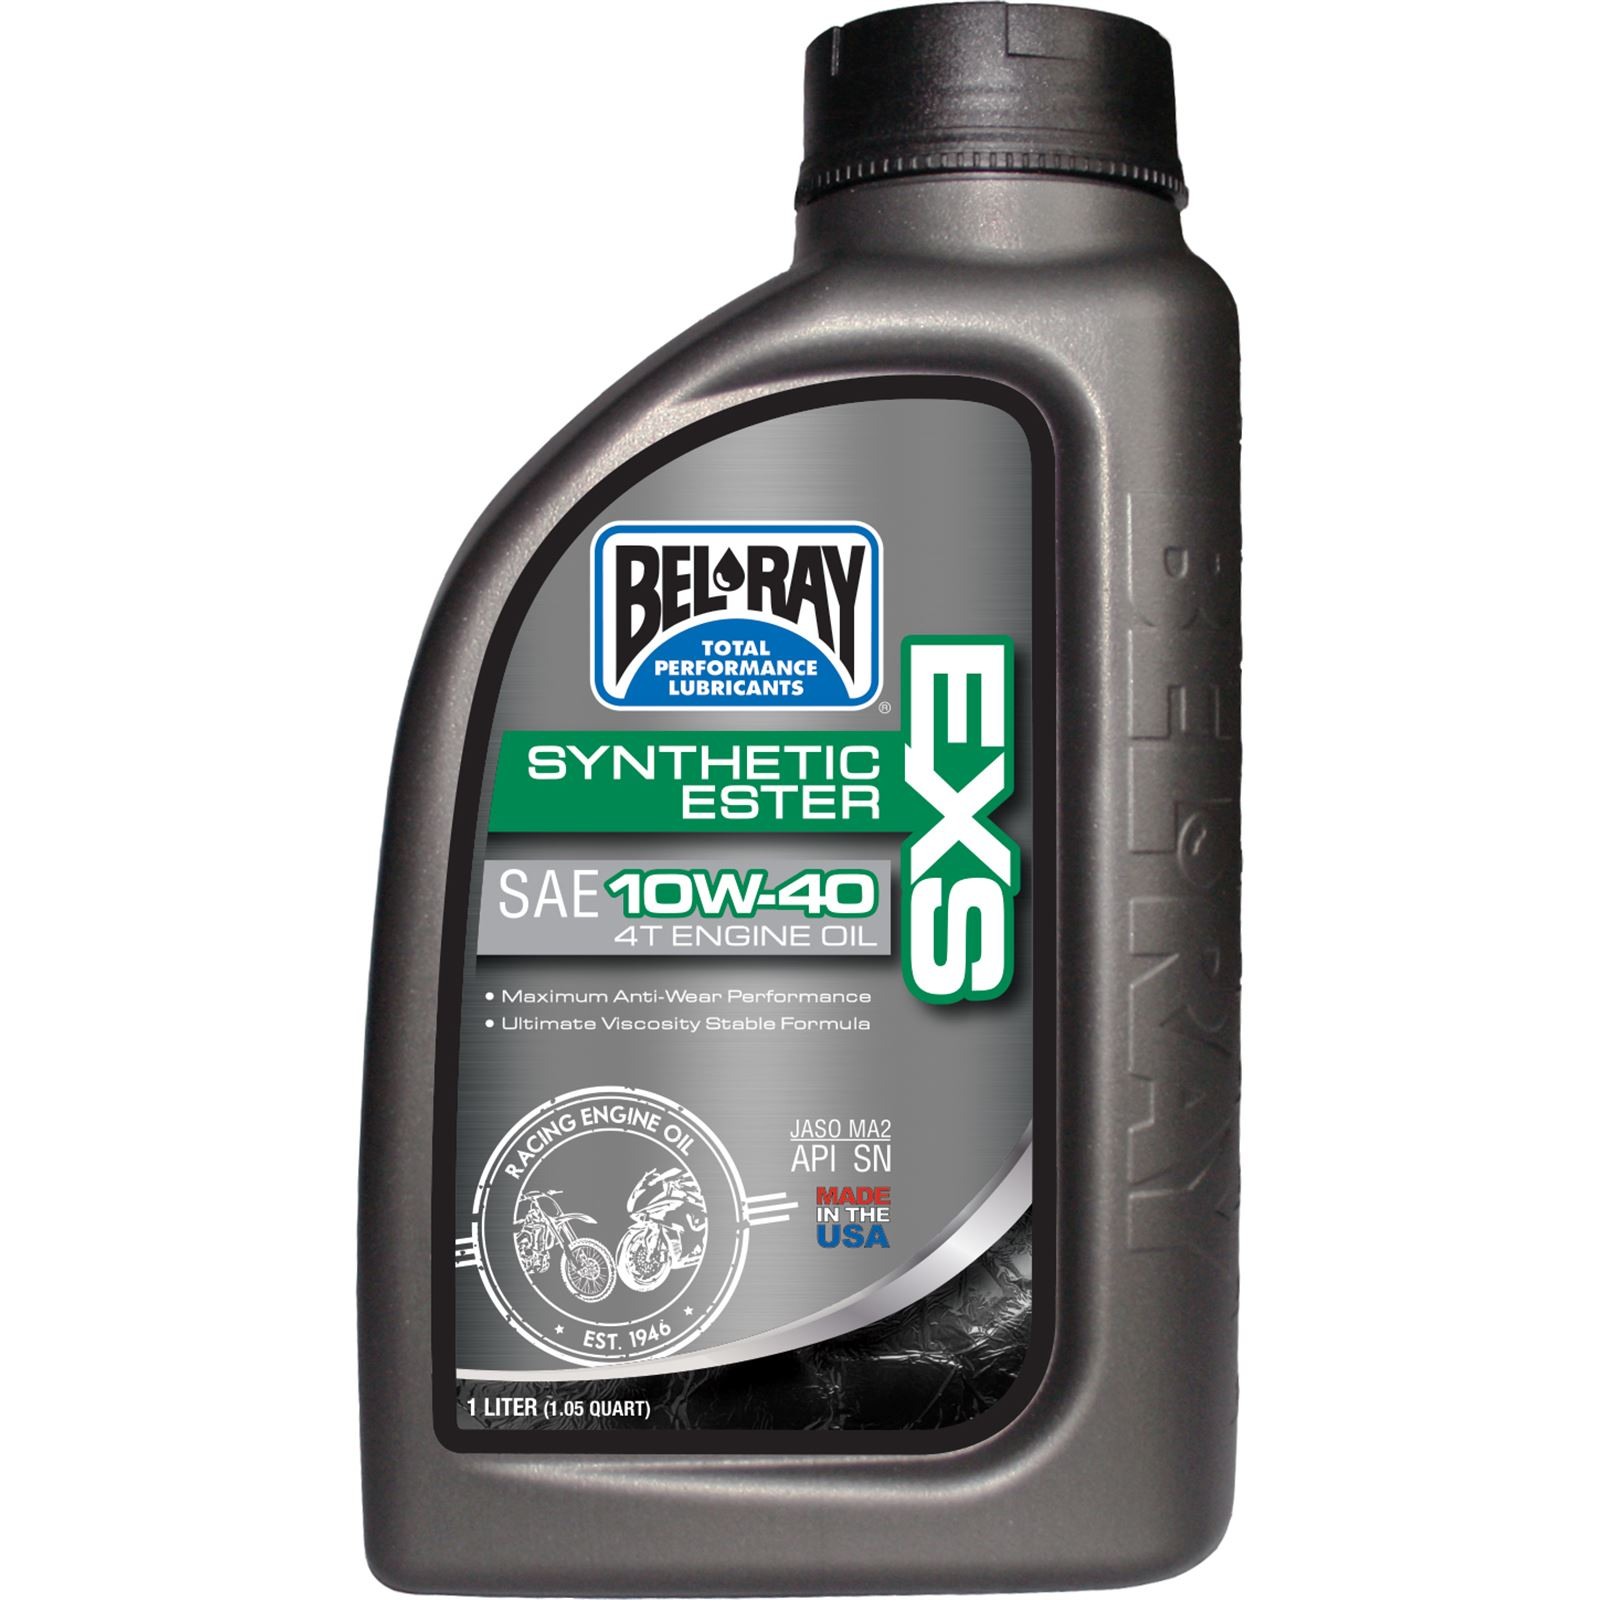 Bel-Ray EXS Full Synthetic Ester 4T Engine Oil